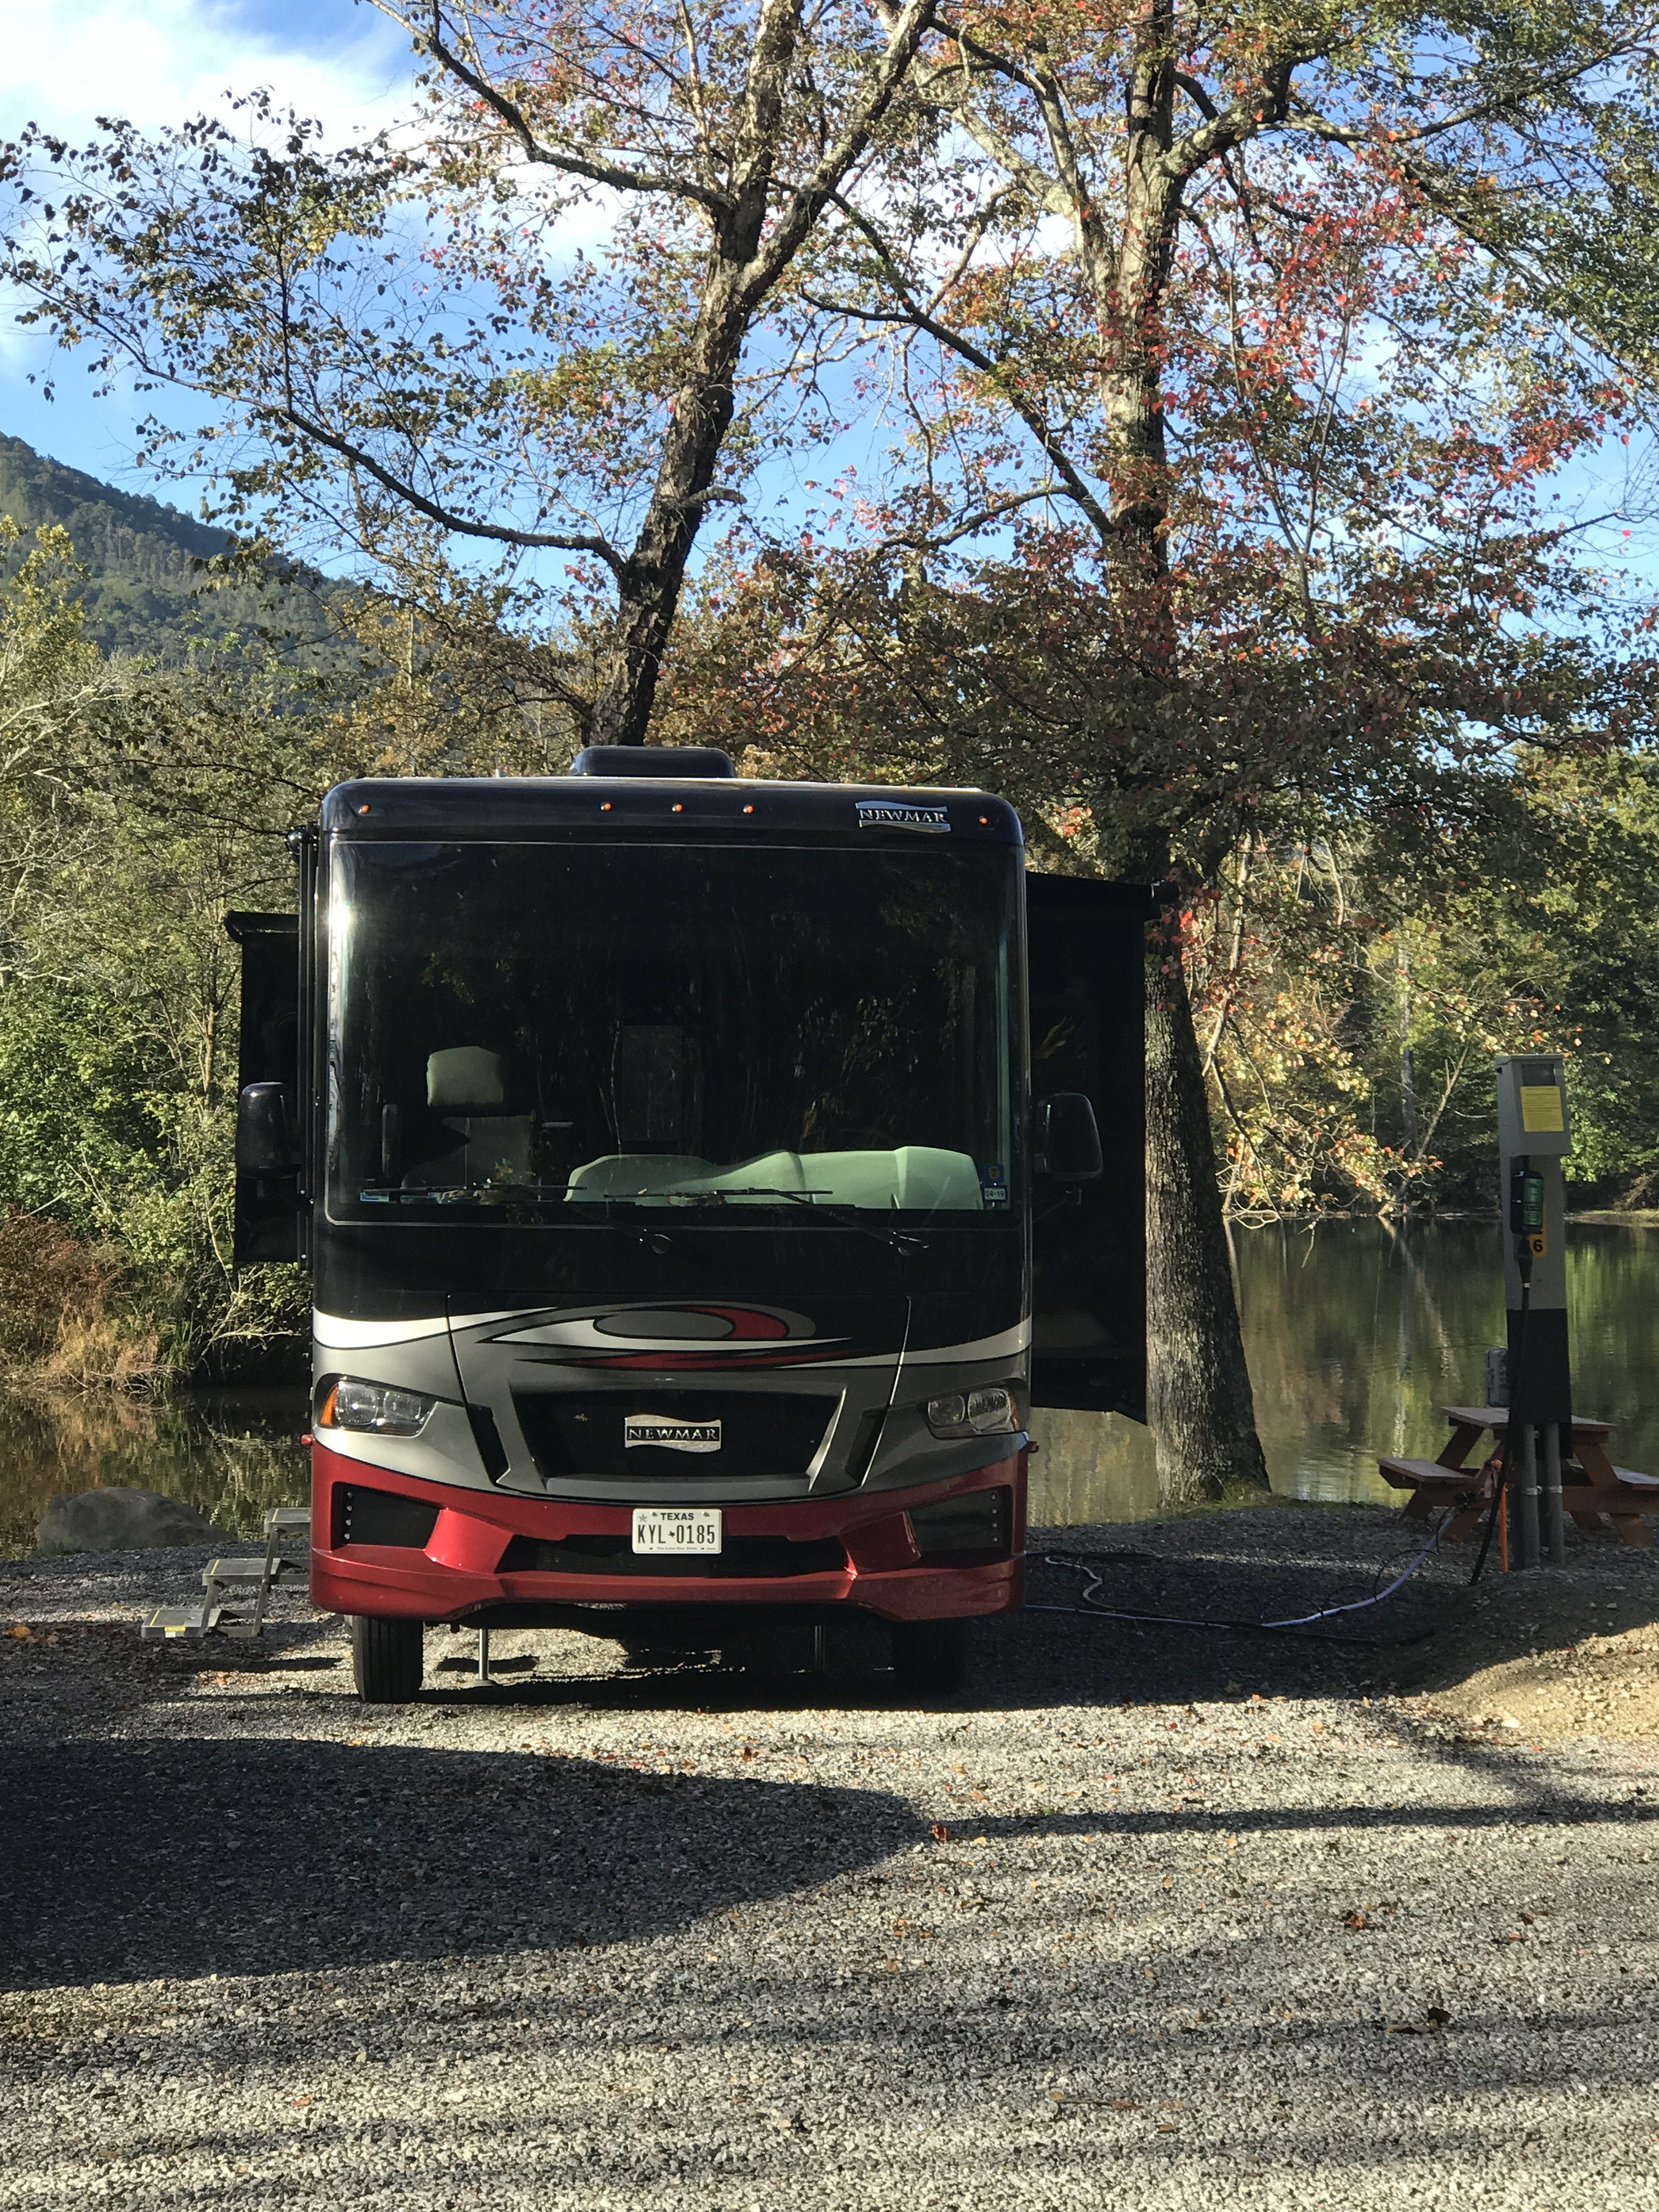 Episode 147: The Pros and Cons of Class A Motorhomes